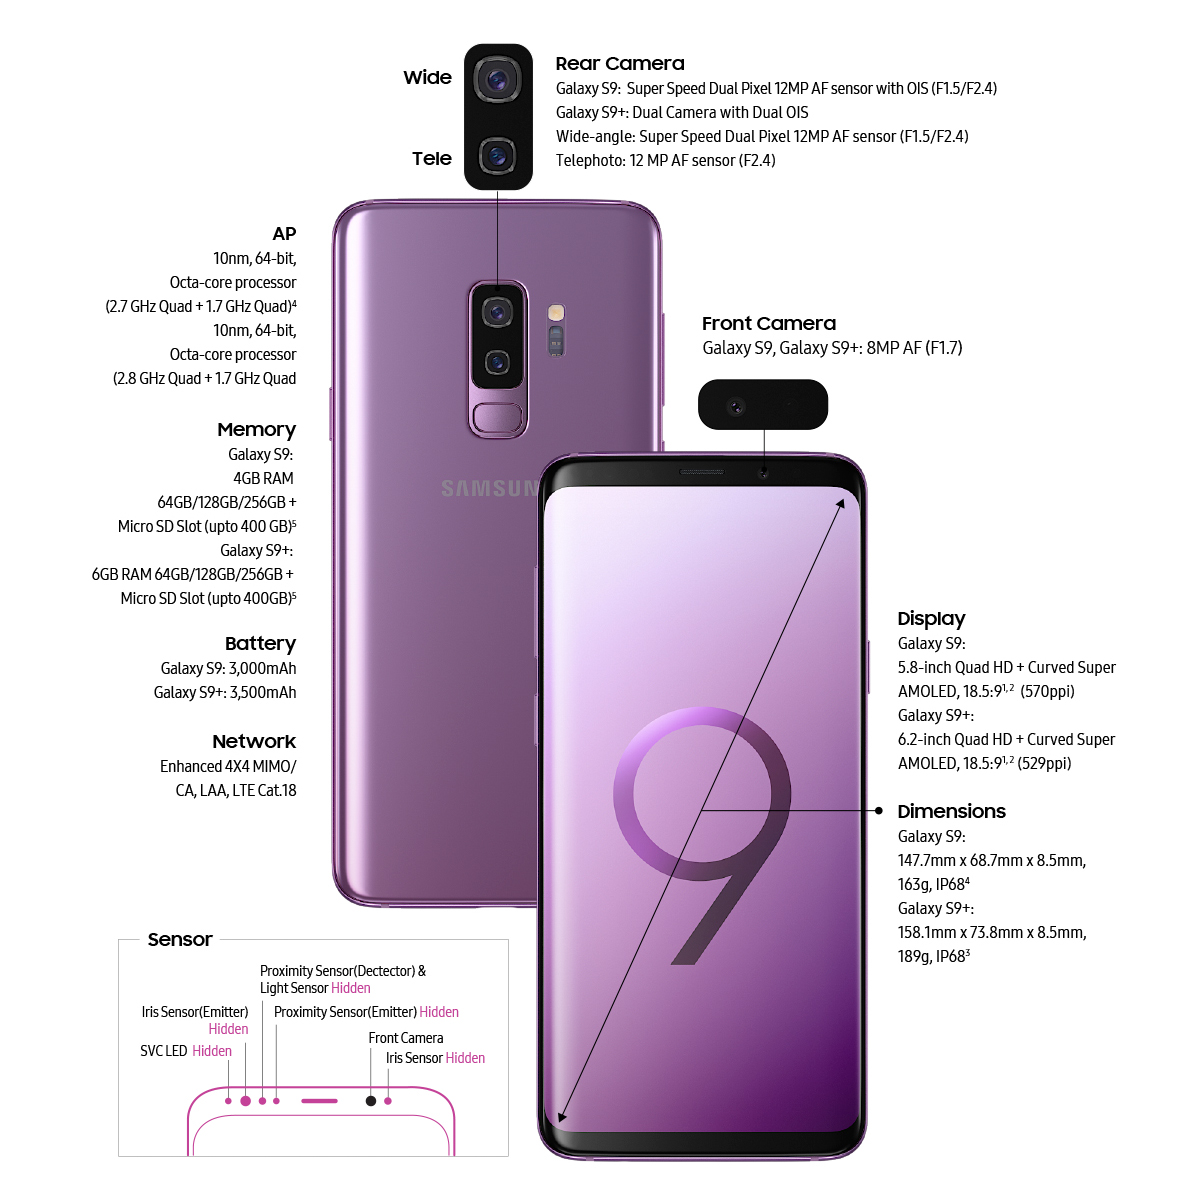 Key Specs Of The Samsung Galaxy S9 And Click On Image To Enlarge